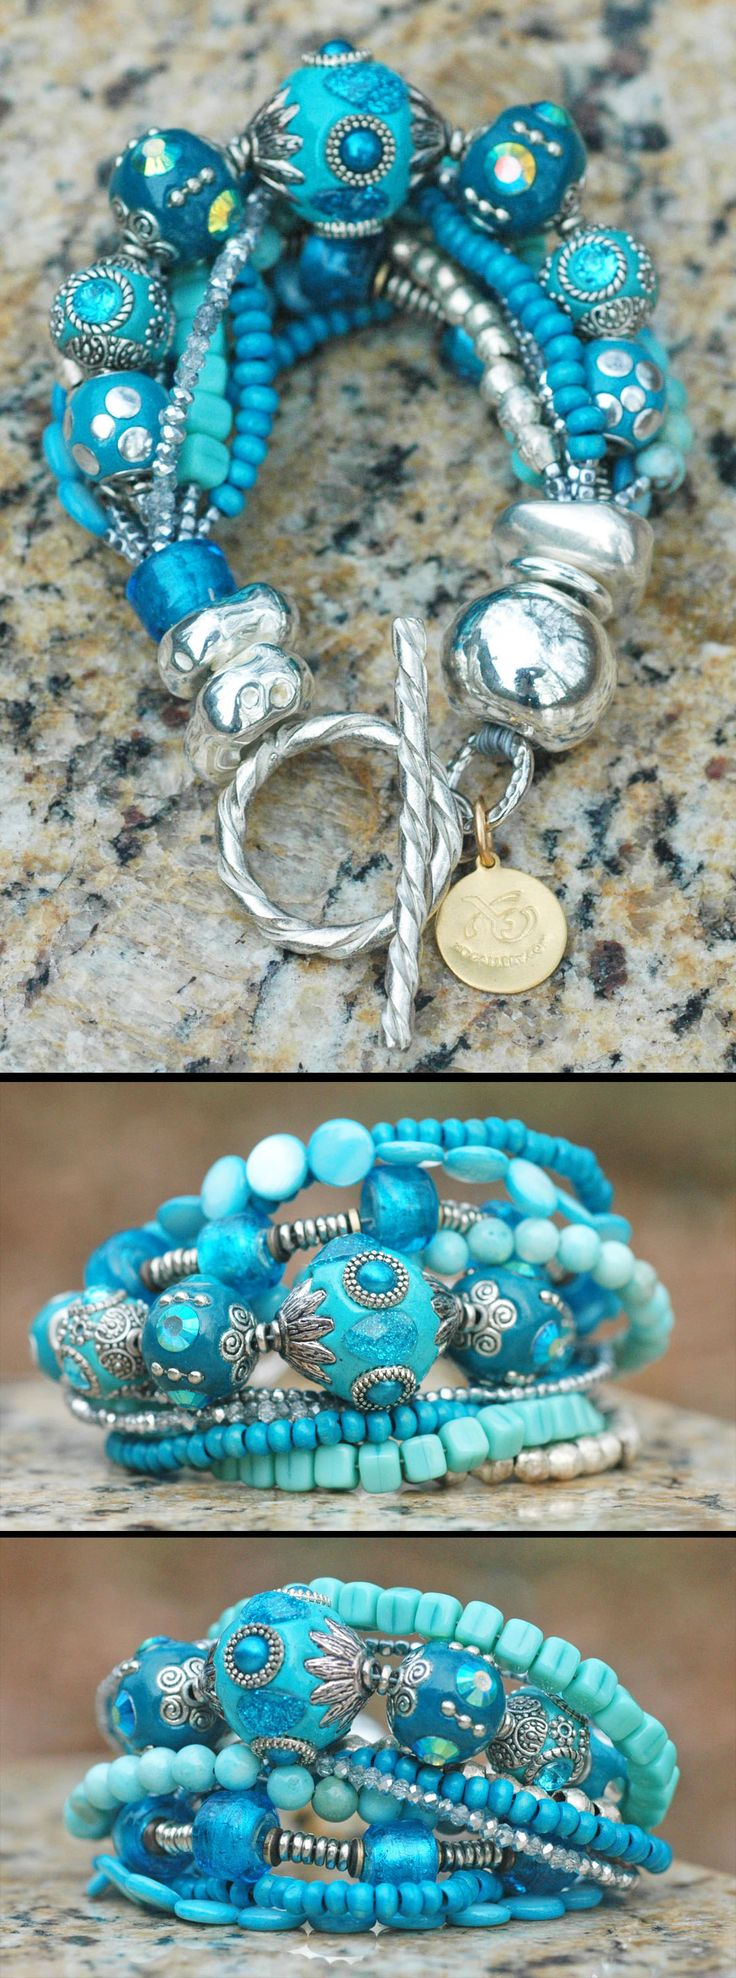 Glitz and Glam Blue and Silver Statement Bracelet